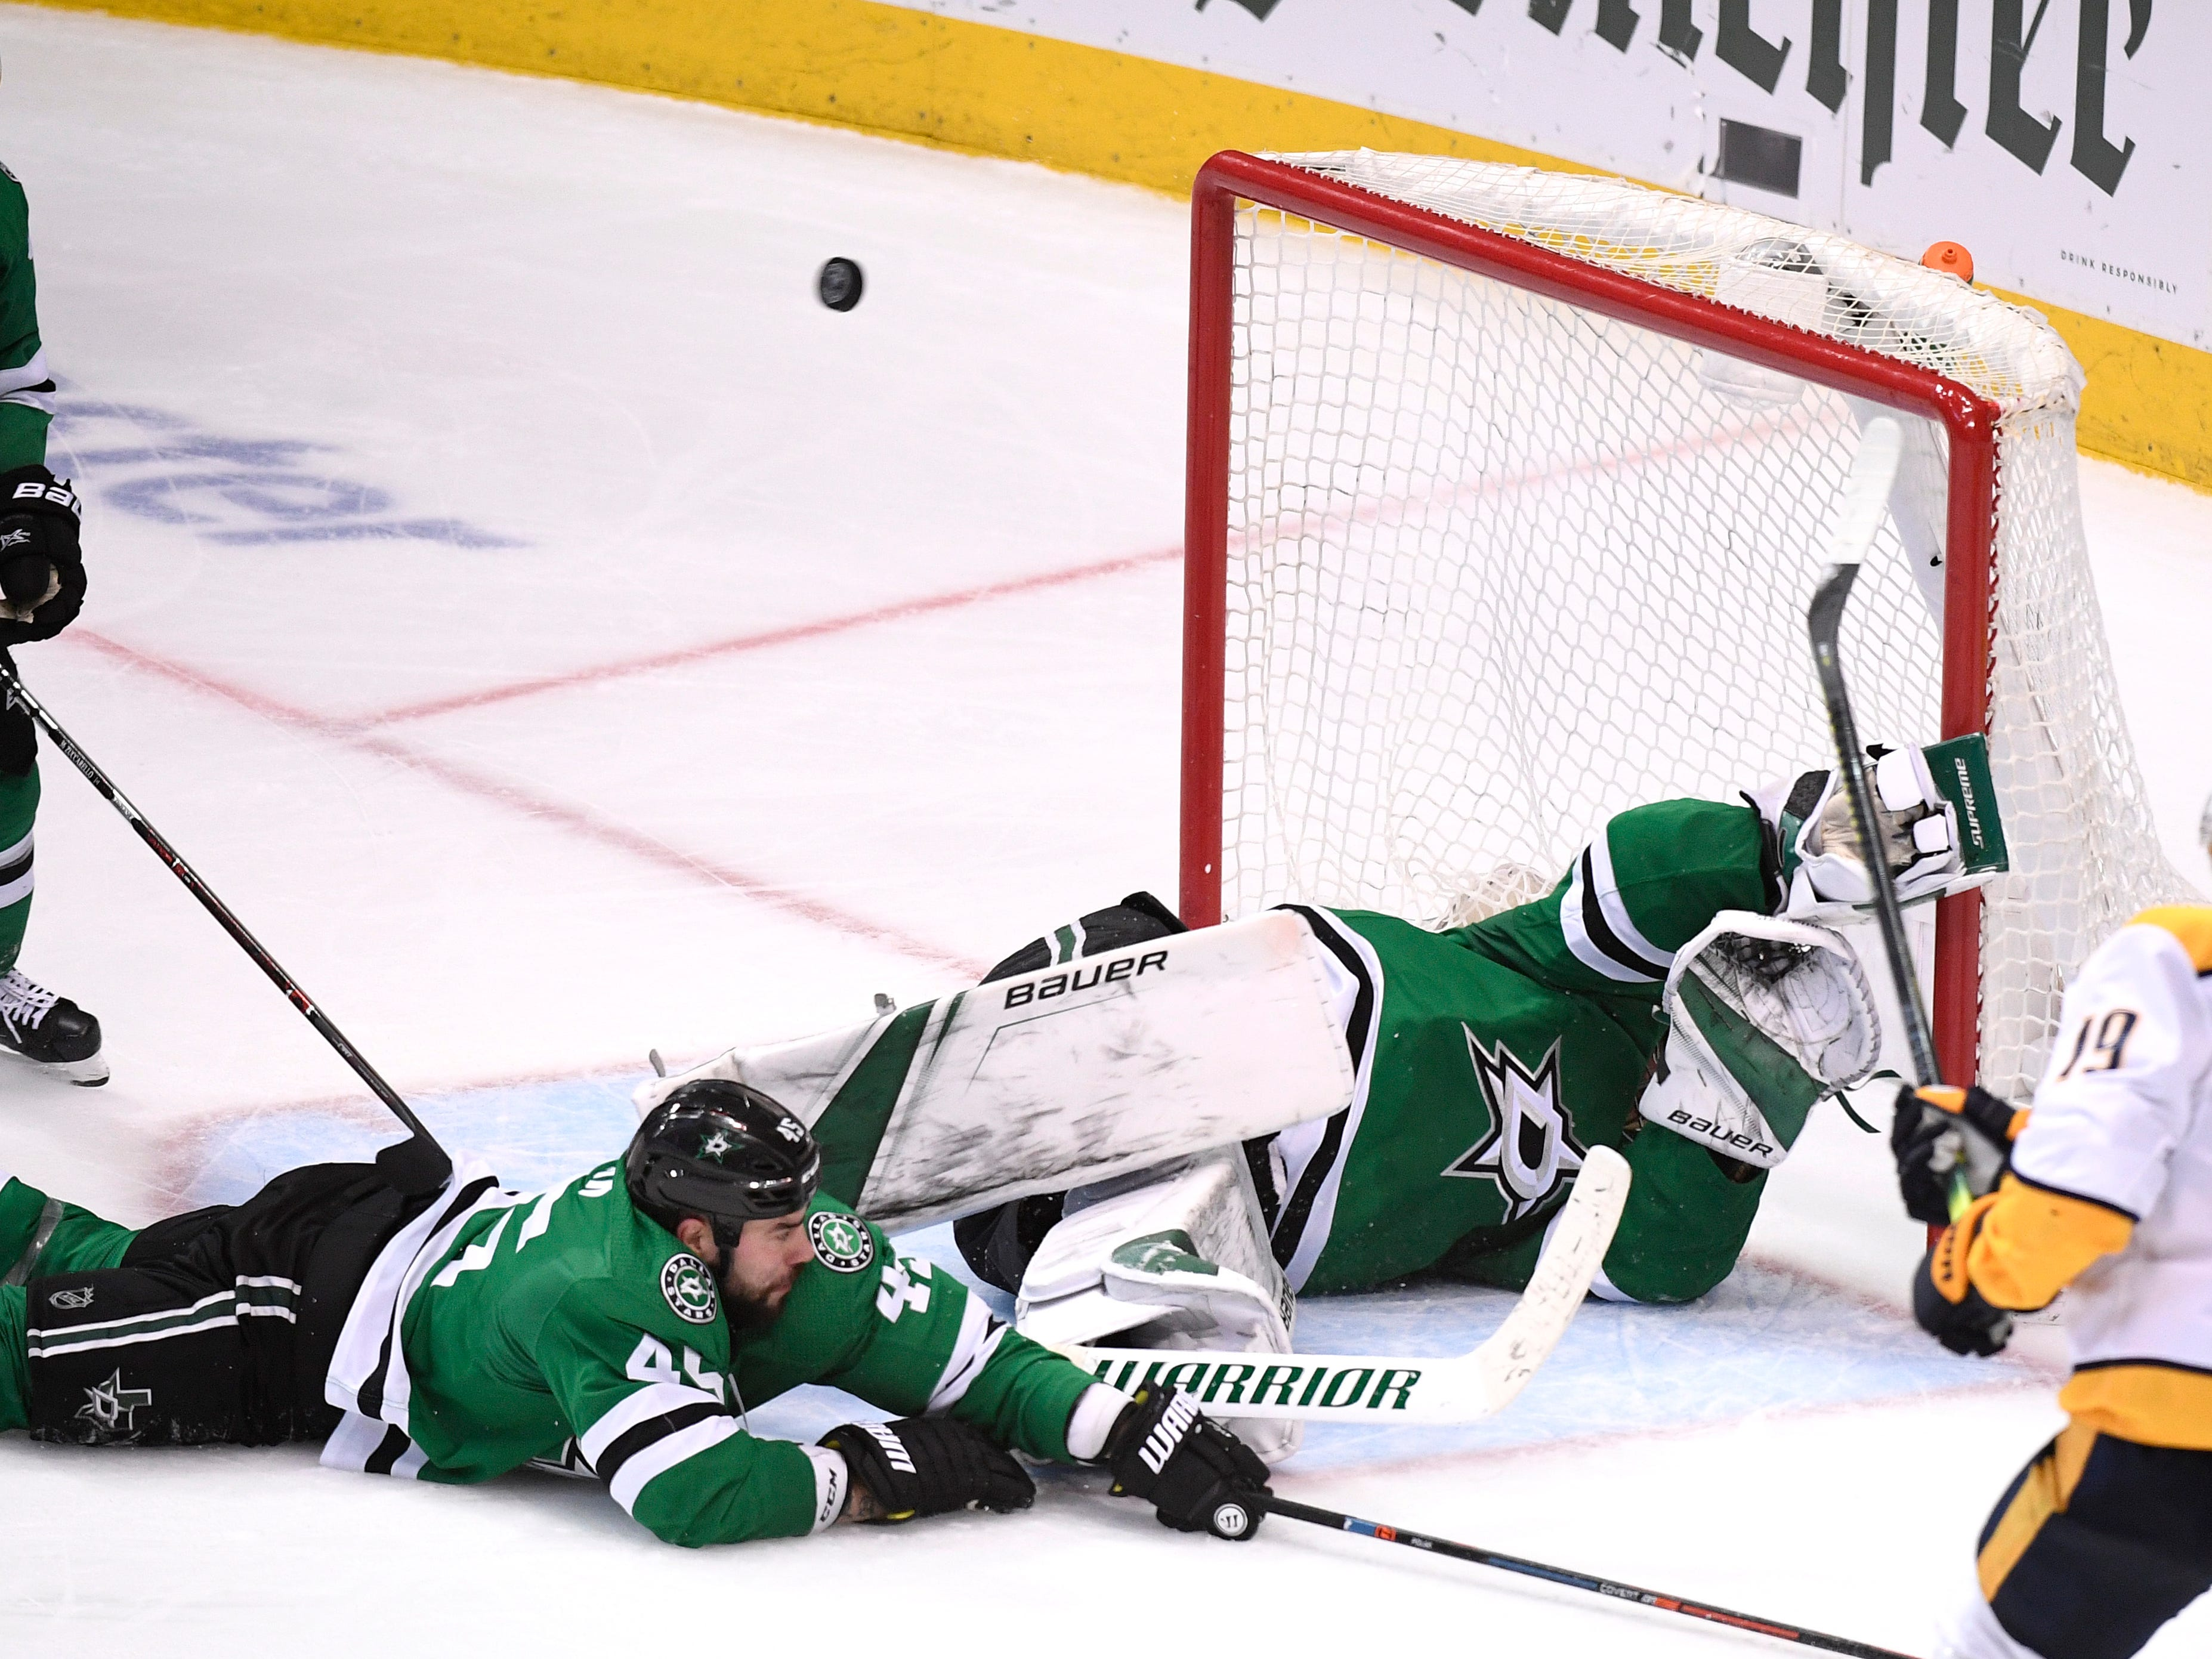 A Predators shot goes wide of the neck as Dallas Stars goaltender Ben Bishop (30) falls to the ice after losing his stick during the third period of the divisional semifinal game at the American Airlines Center in Dallas, Texas, Monday, April 22, 2019.